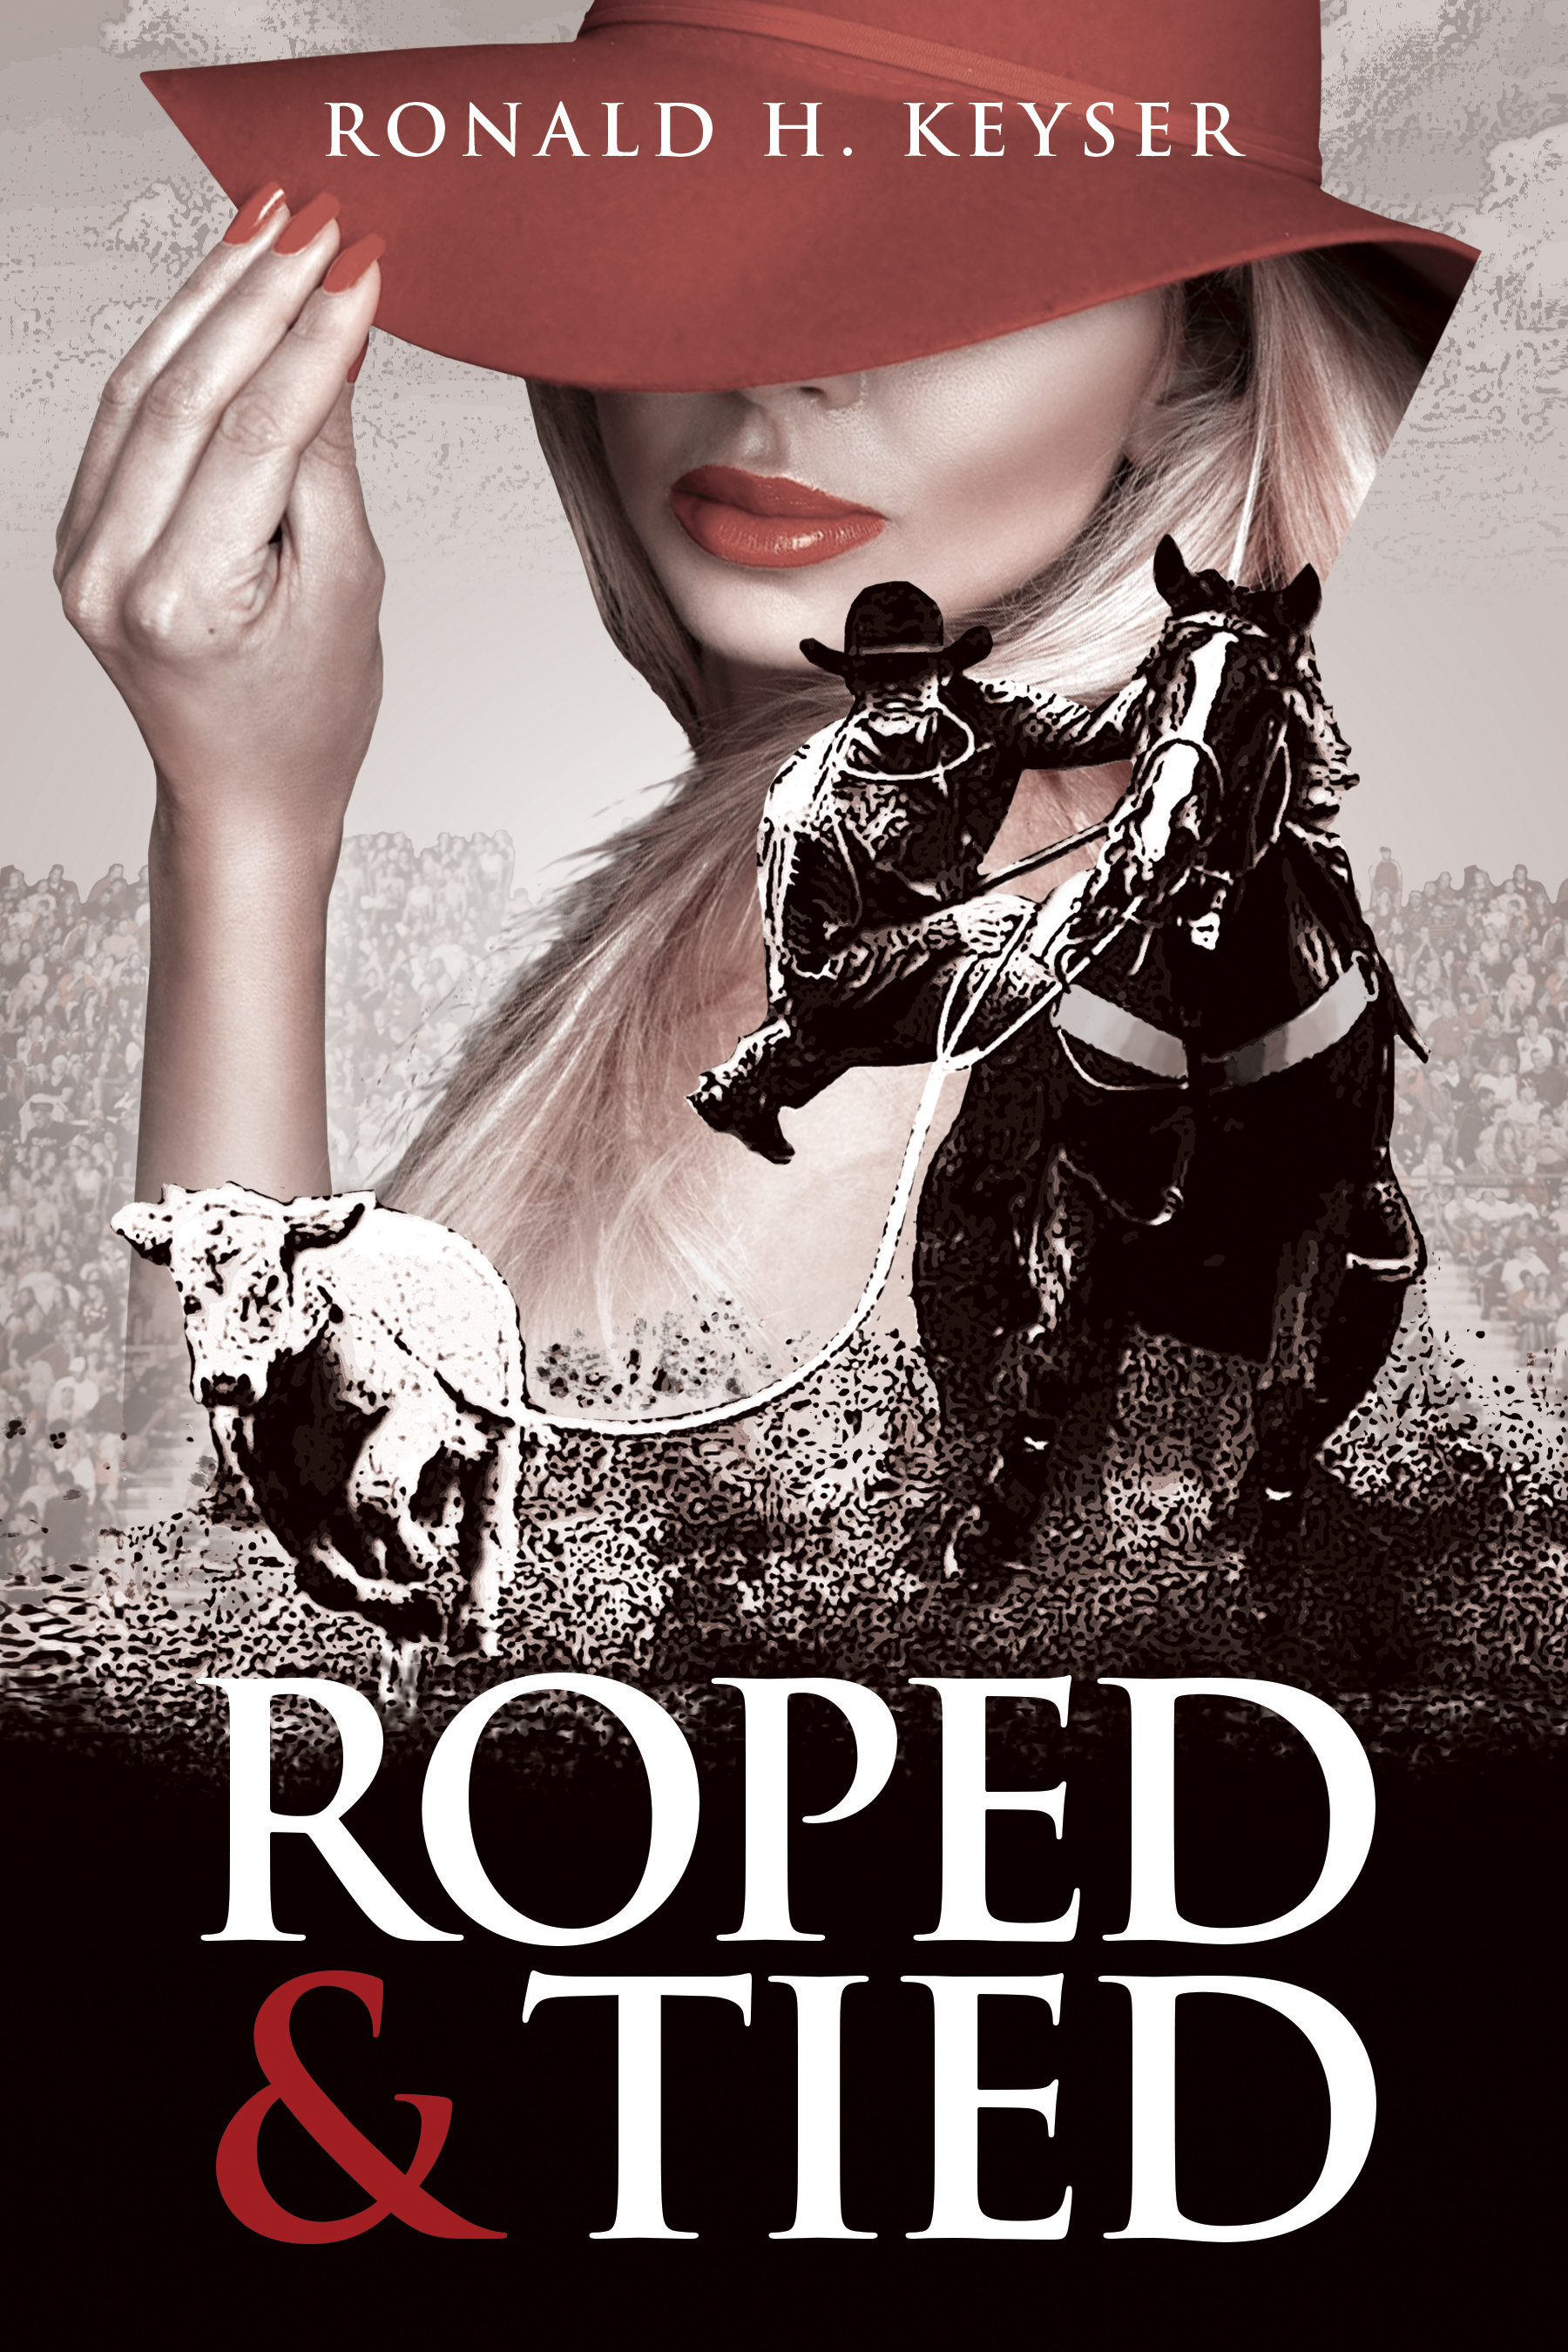 Roped & Tied